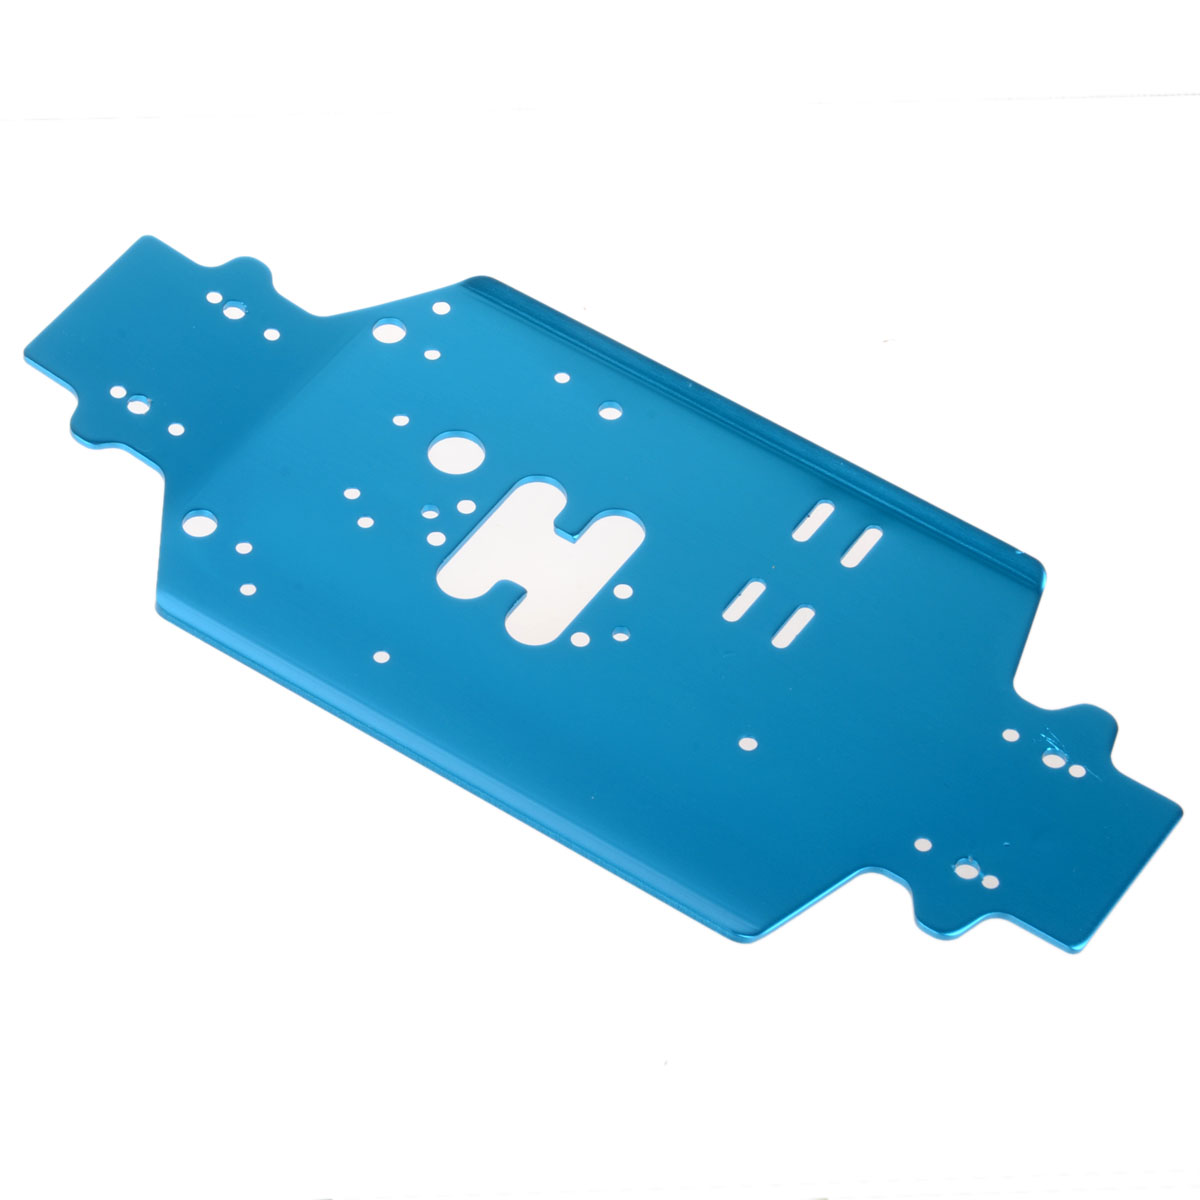 REMO P2502 Chassis Bracket 1//16 RC Car Parts For Truggy Buggy Short Course 1631